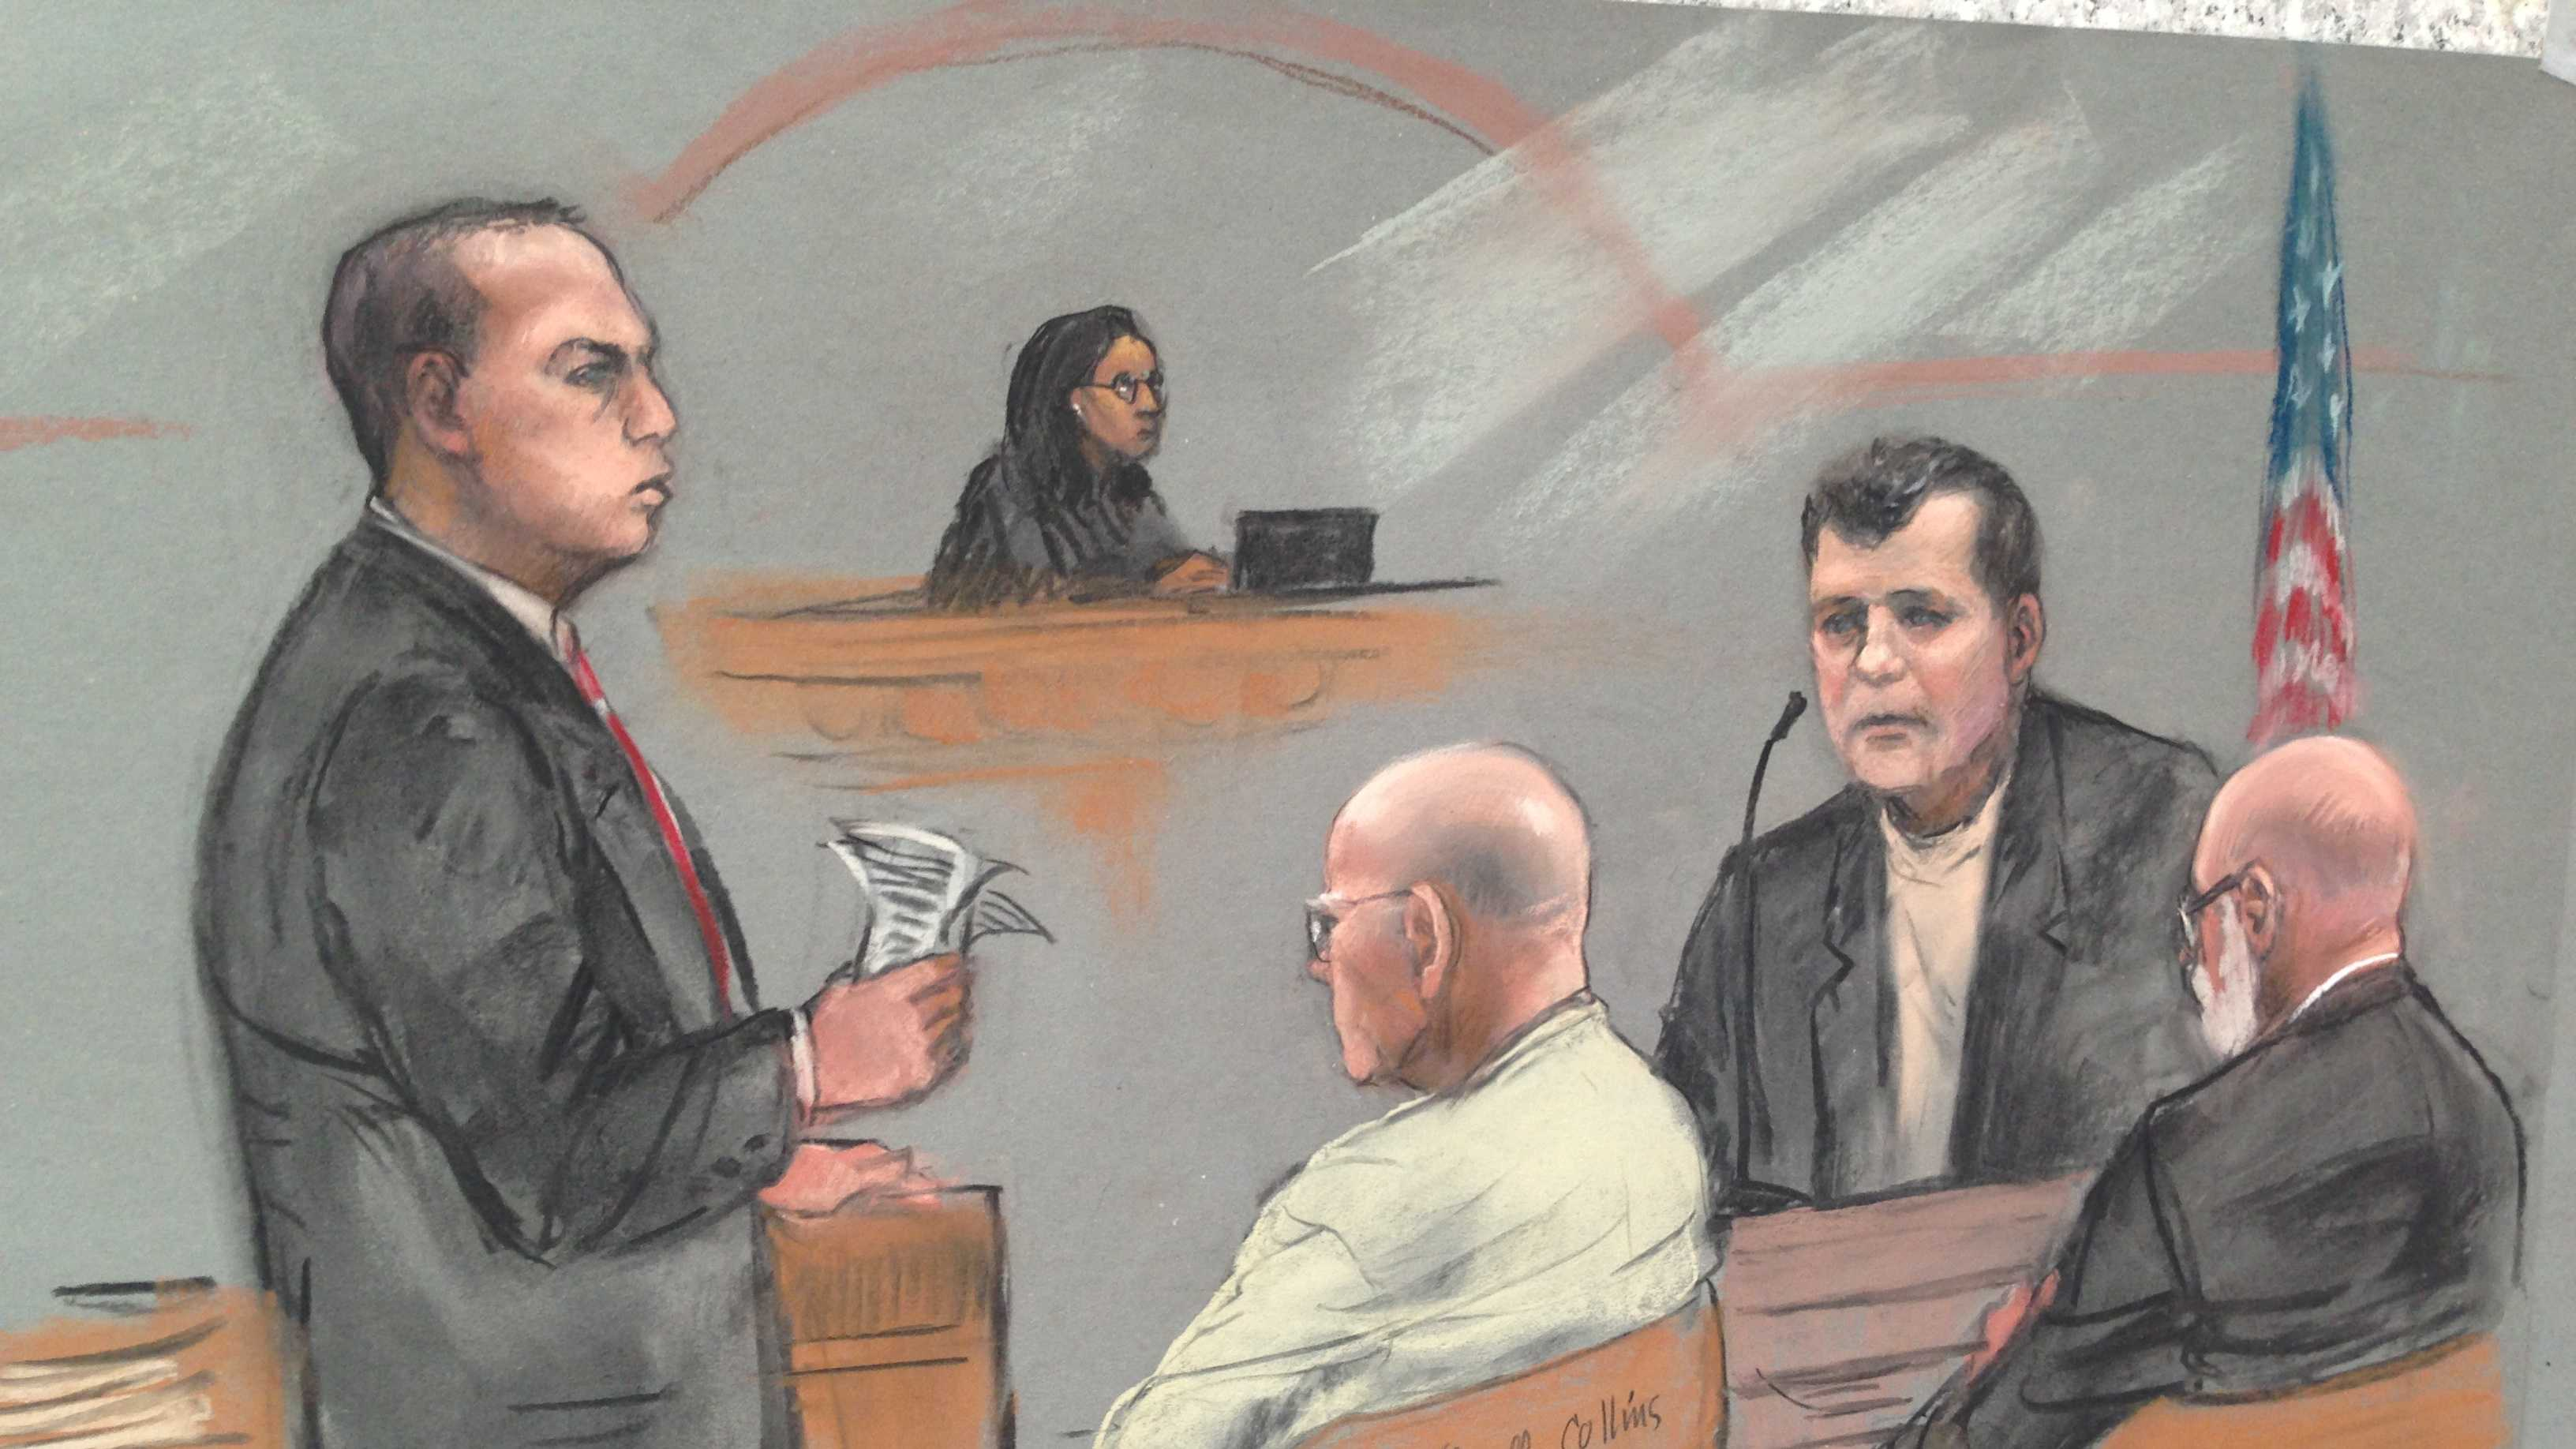 Bulger sketch Kevin Weeks testifies 070813